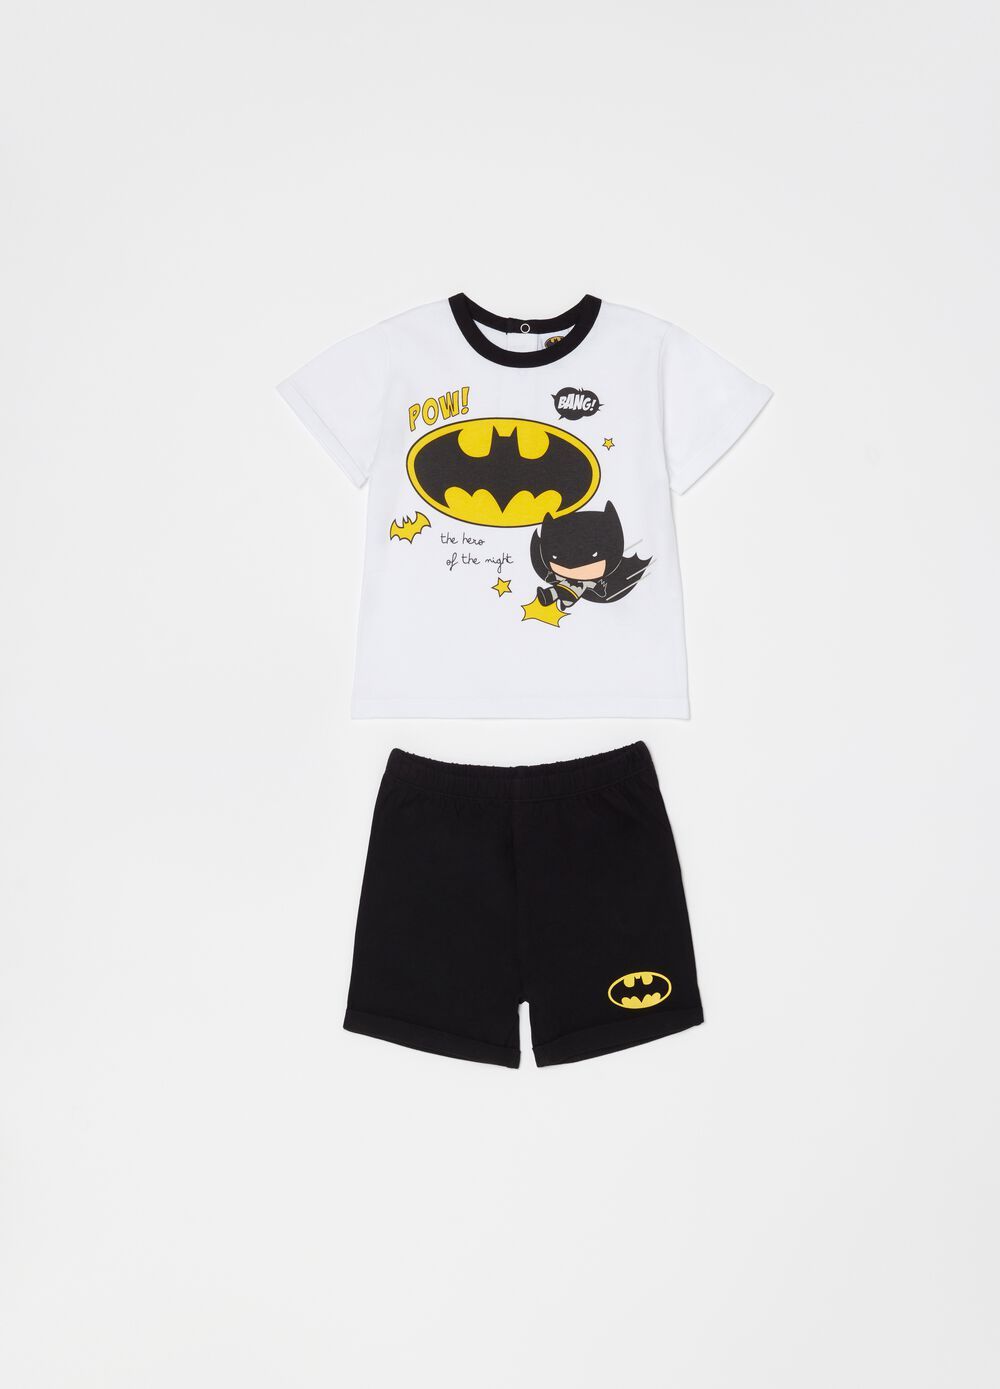 Short Warner Bros Batman pyjamas